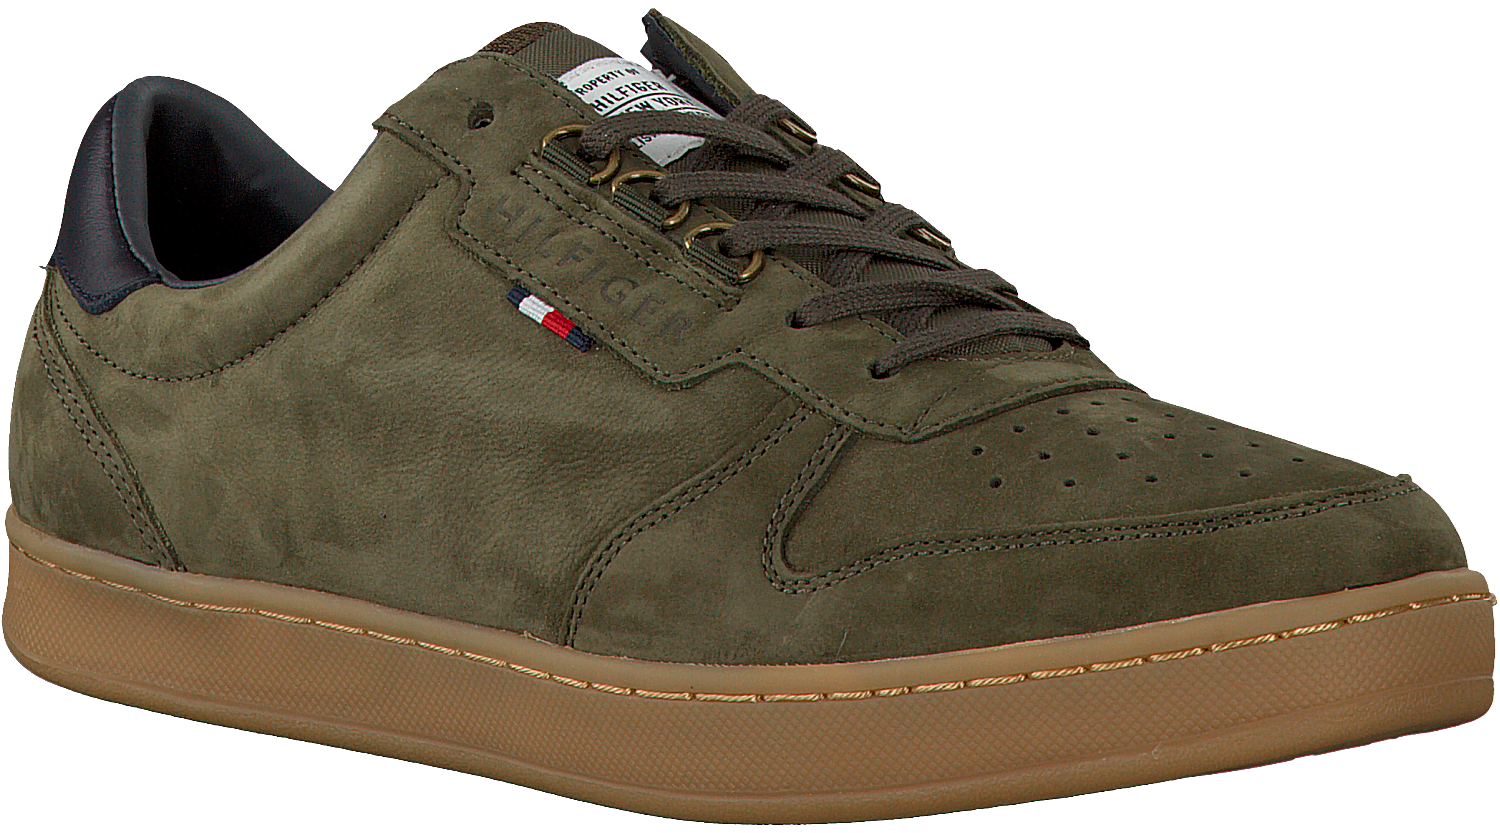 0592555d0e0 Groene TOMMY HILFIGER Sneakers HOXTON 1N - large. Next